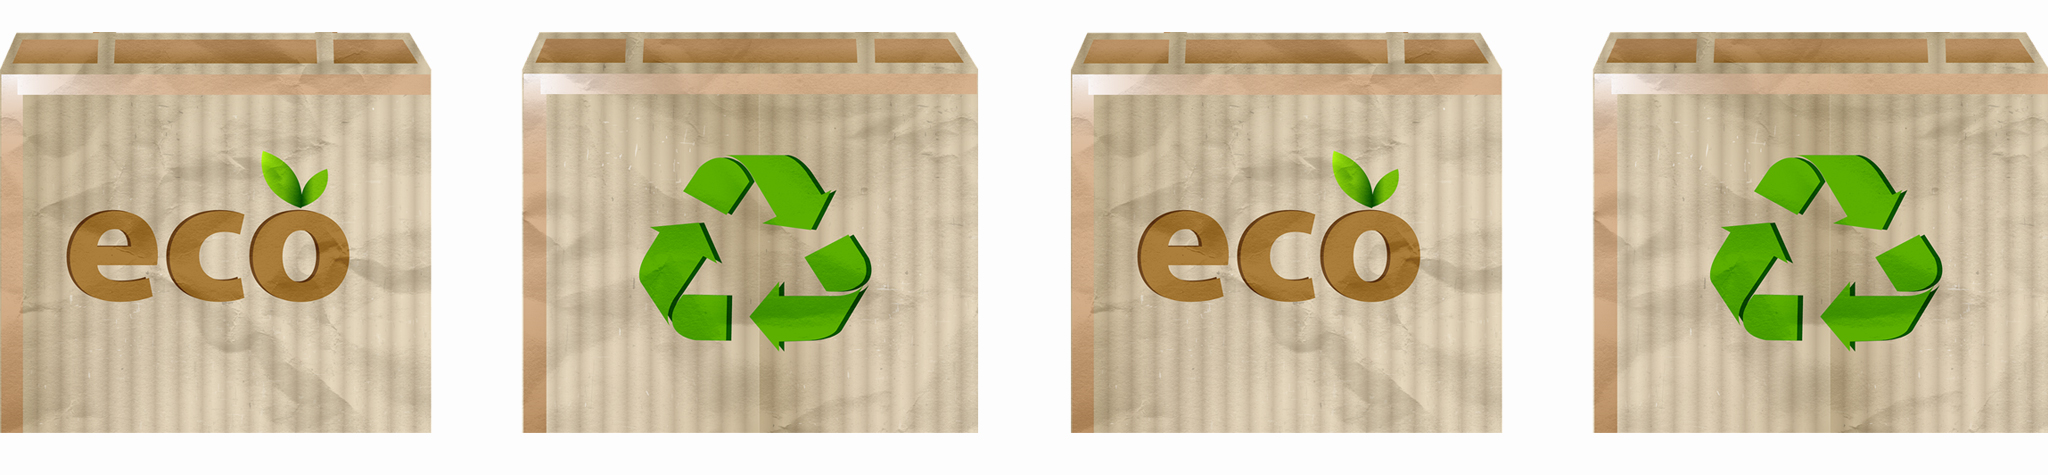 packaging_eco_ecommerce